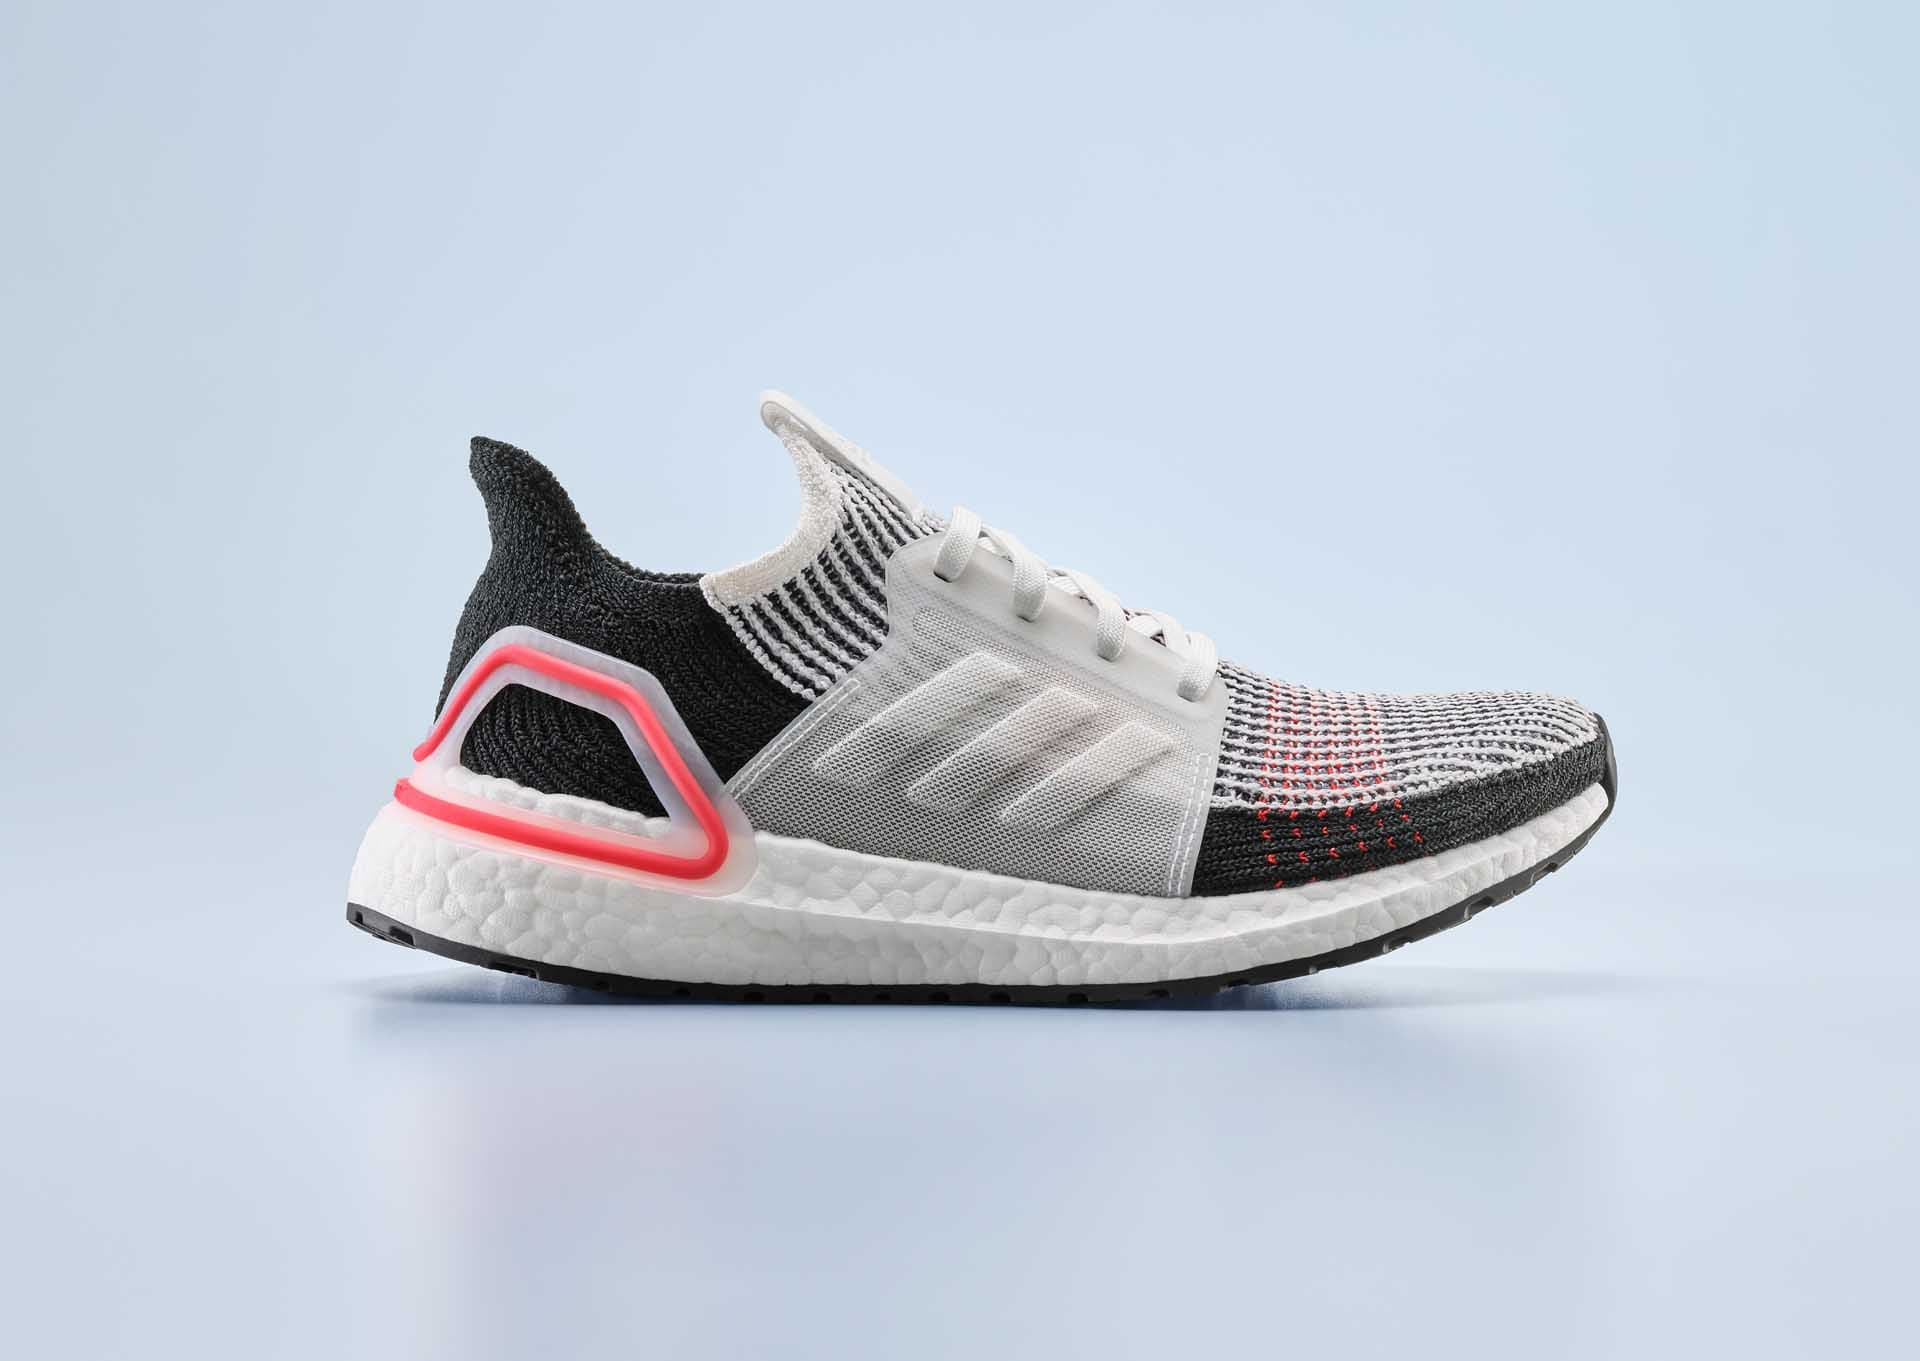 e91f64deac5 adidas Unveils The Ultraboost 19 - SoccerBible